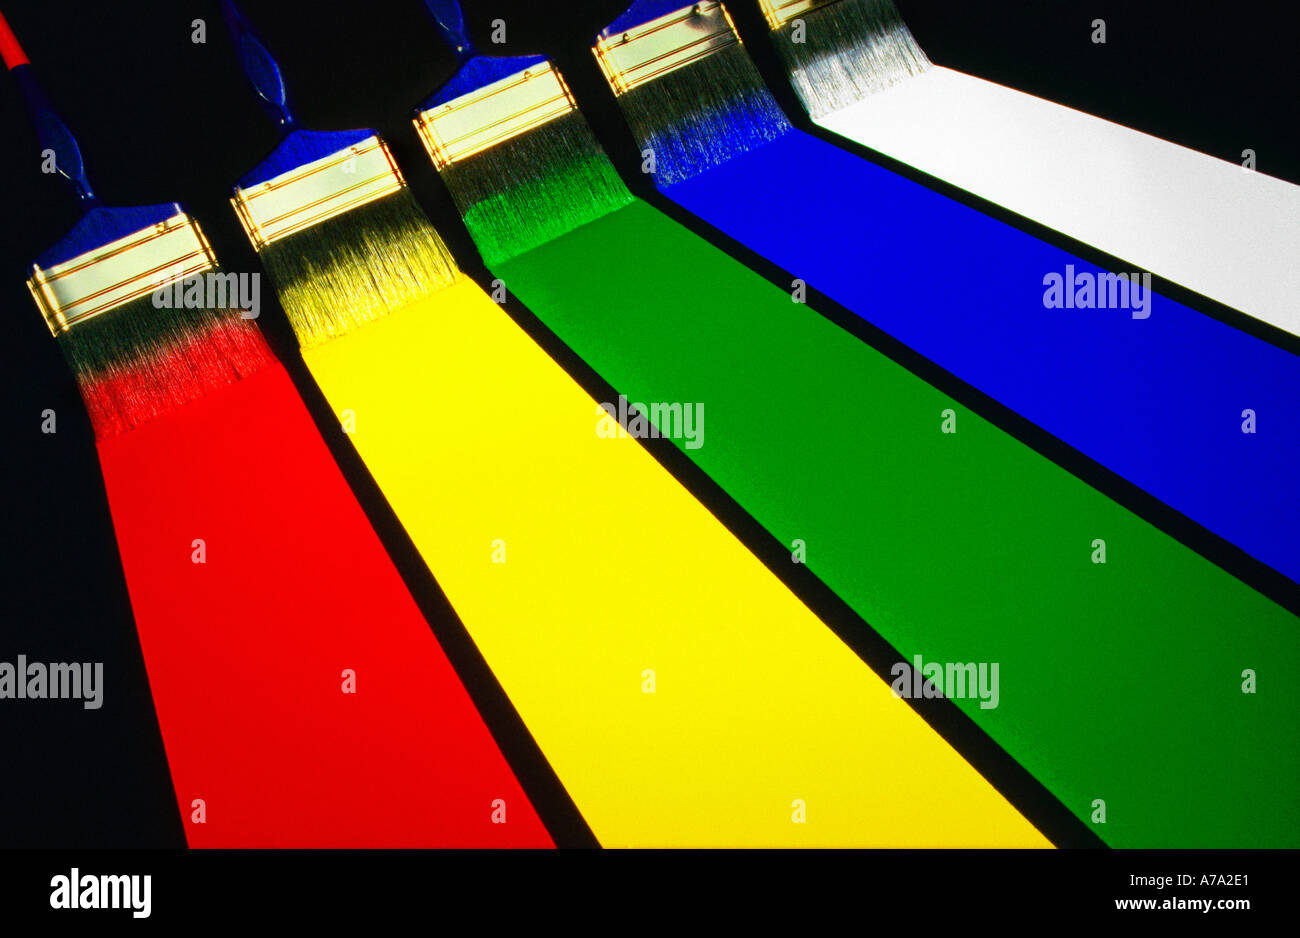 Paint spectrum - Stock Image